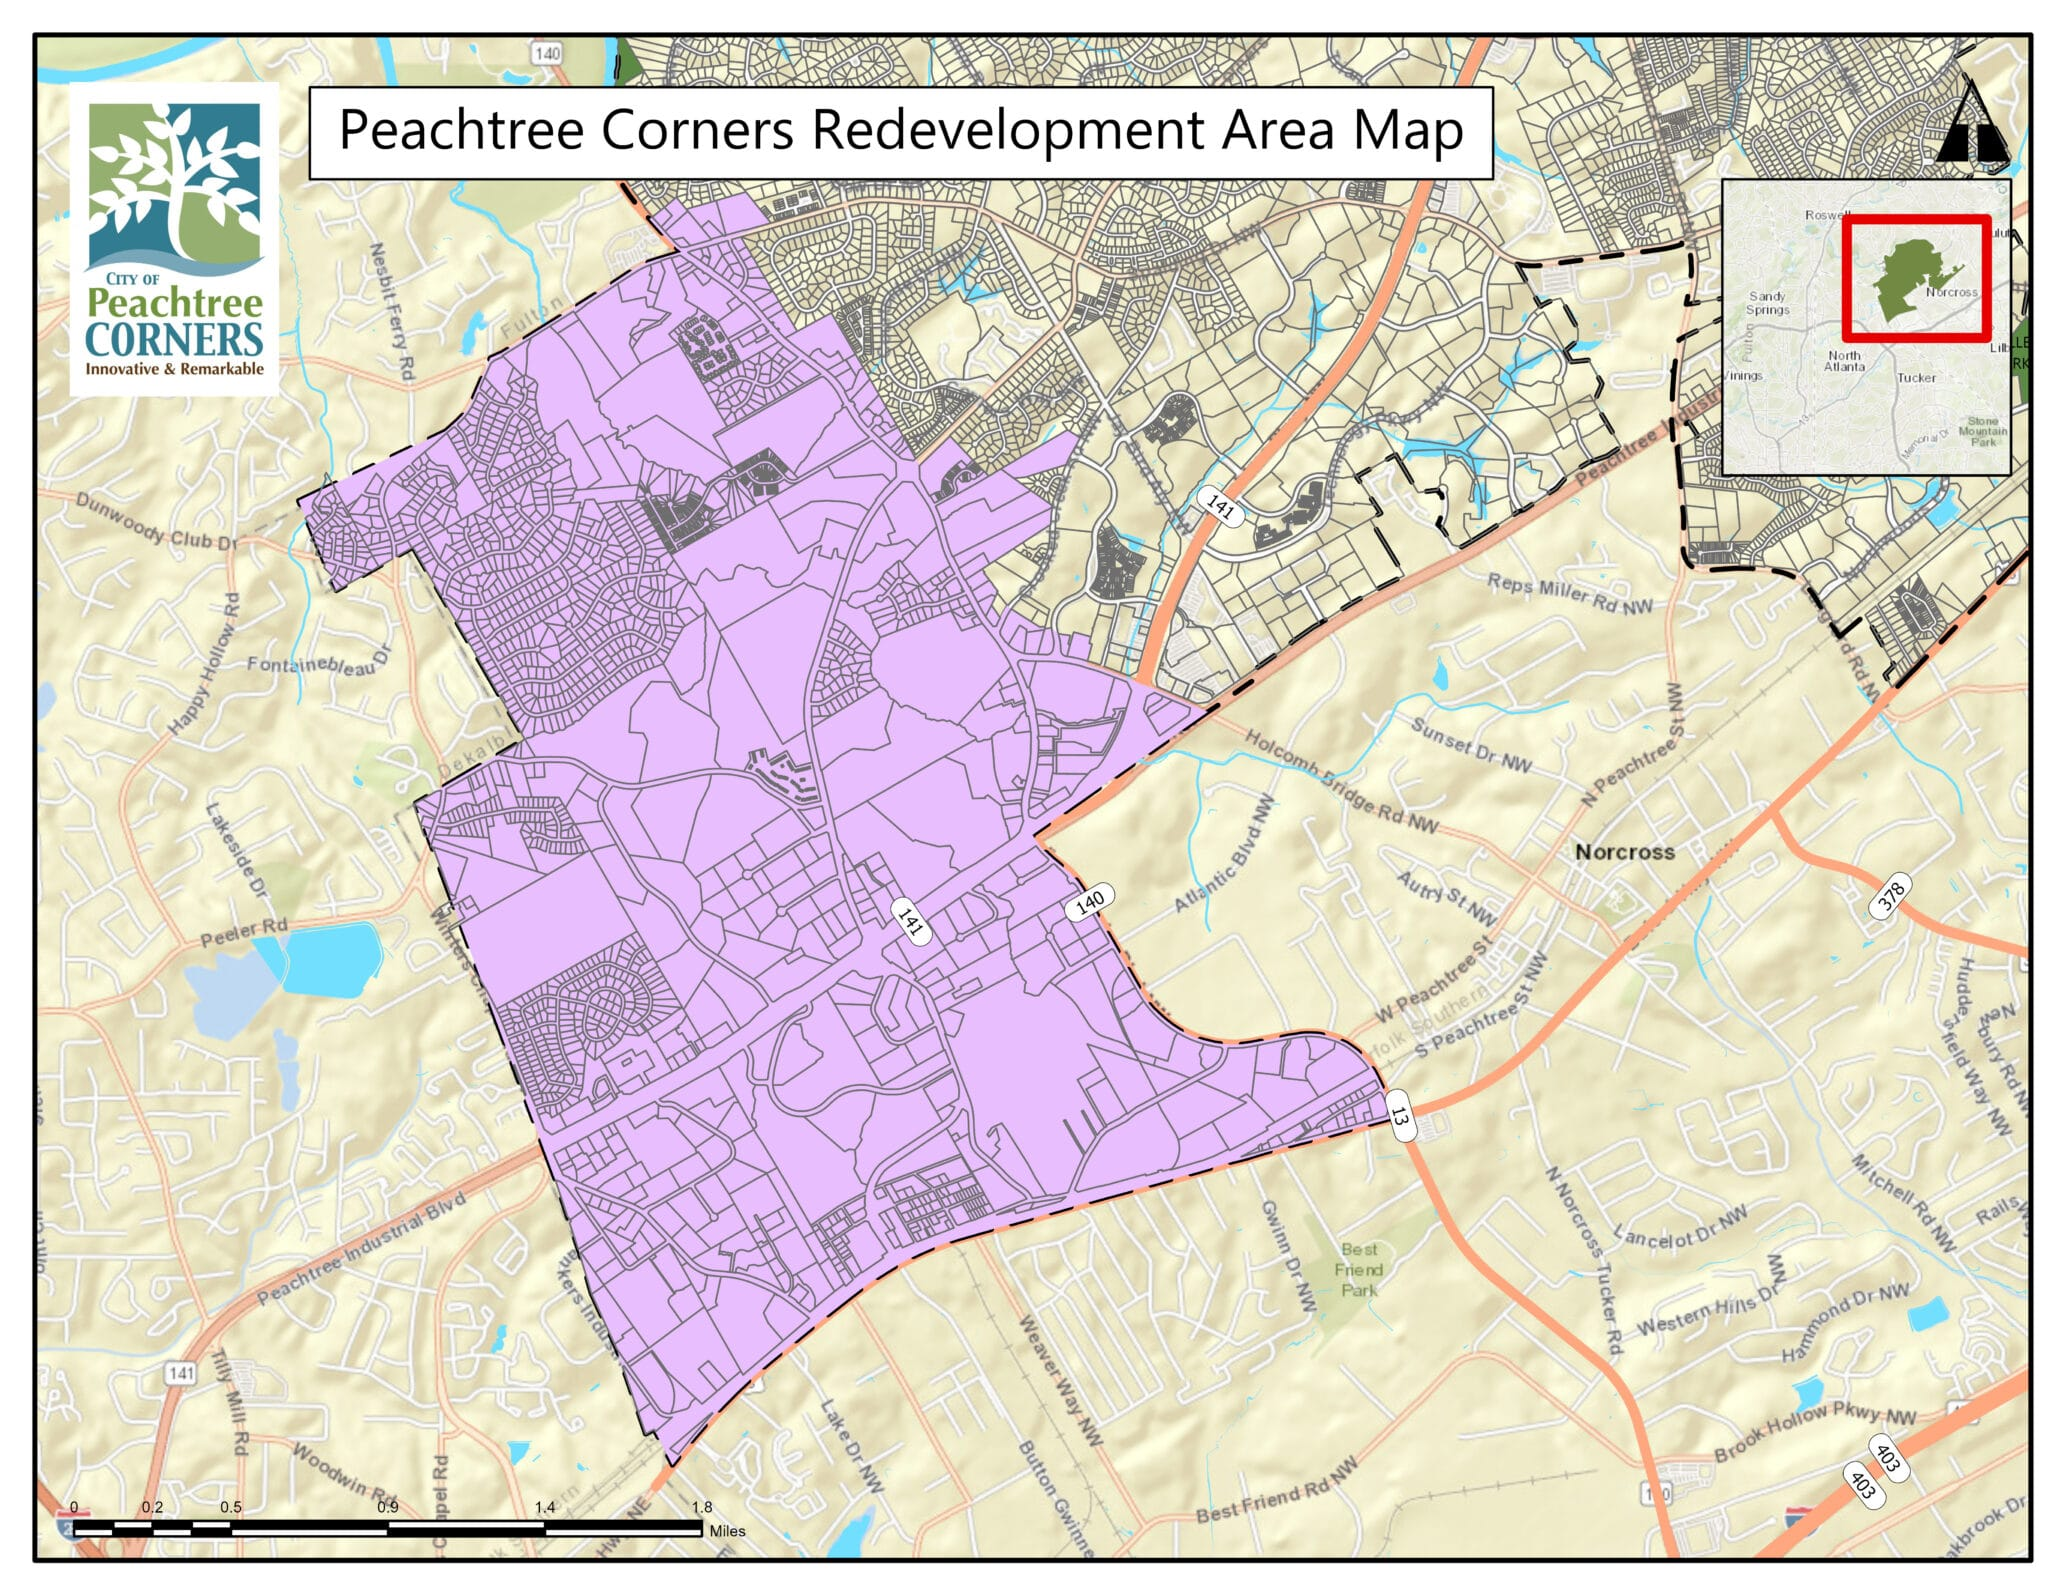 redevelopment authority board in peachtree corners